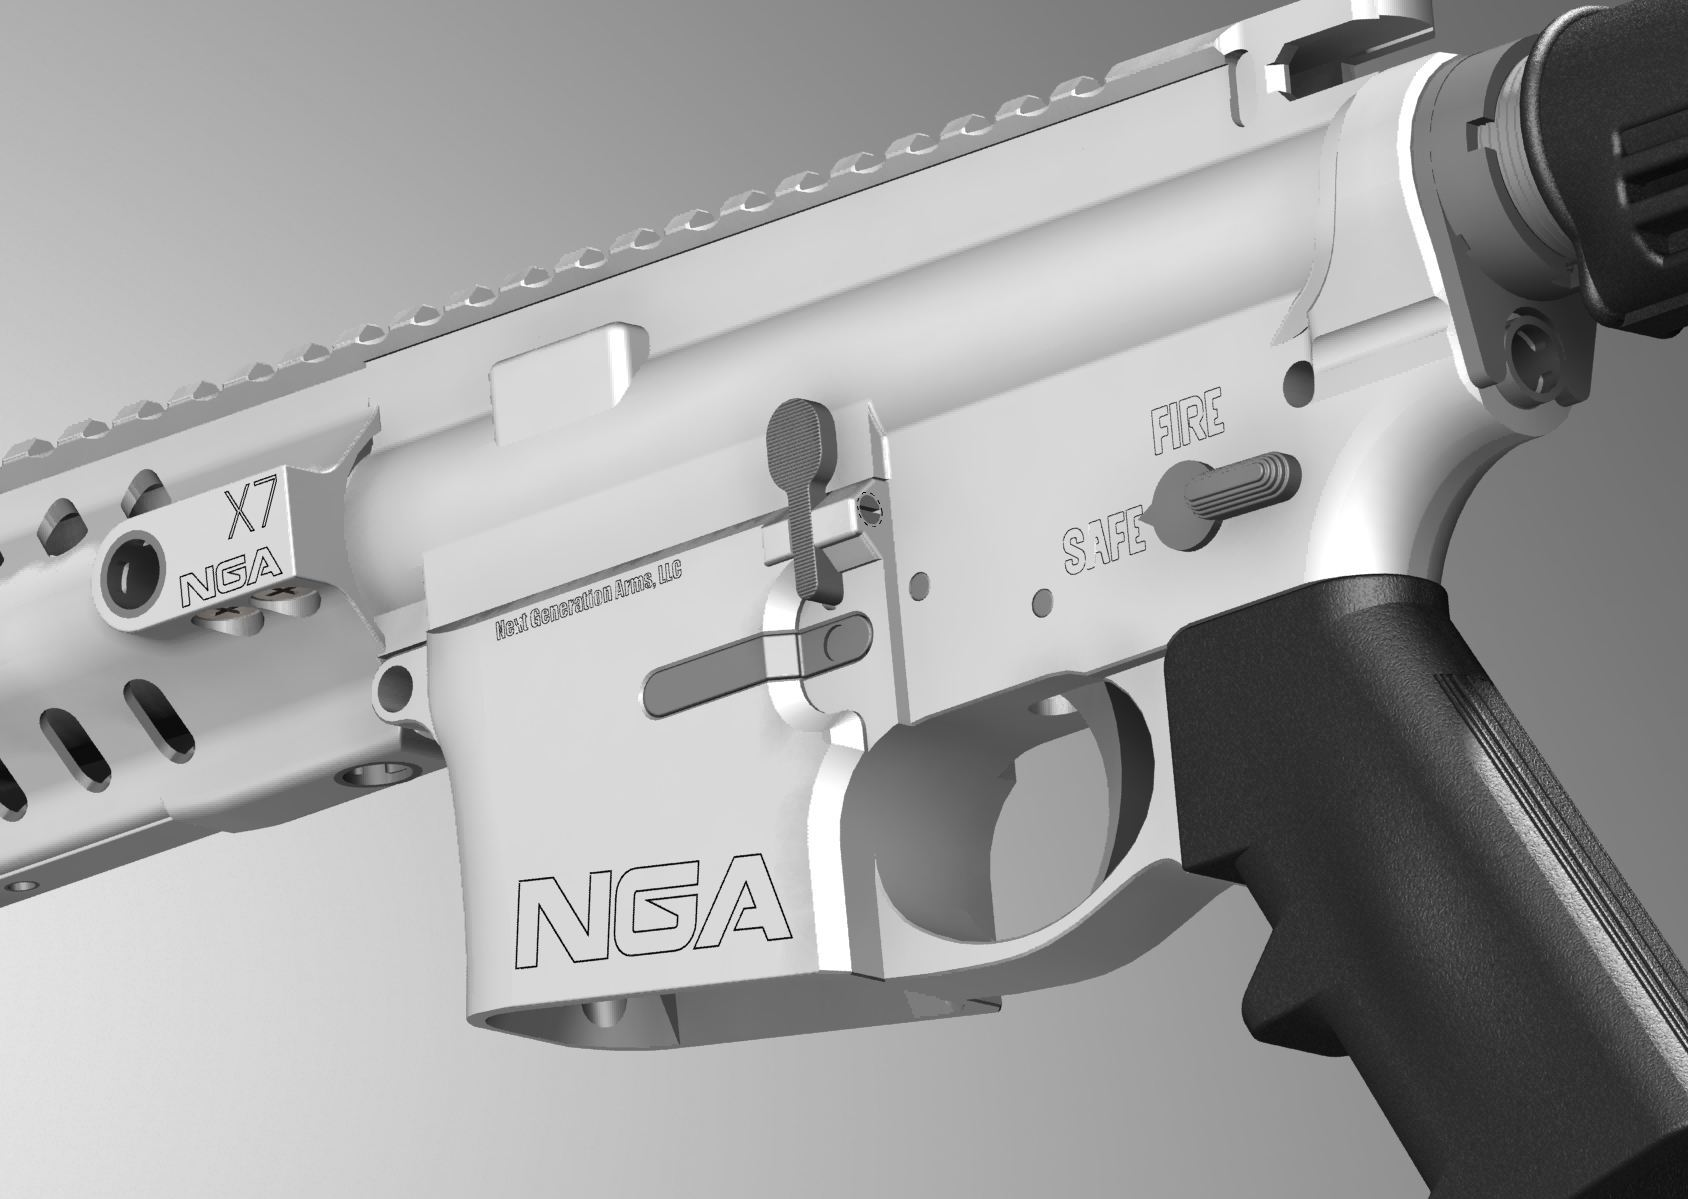 Next Generation Arms NGA X7 Tactical AR Carbine 1 <!  :en  >Next Generation Arms (NGA) X7 Mid Length Tactical AR Rifle/Carbine/SBR with Advanced Ceramic Technology (ACT) Self Lubricating and Protective Internal and External Ceramic Coating Tech (Video!)<!  :  >